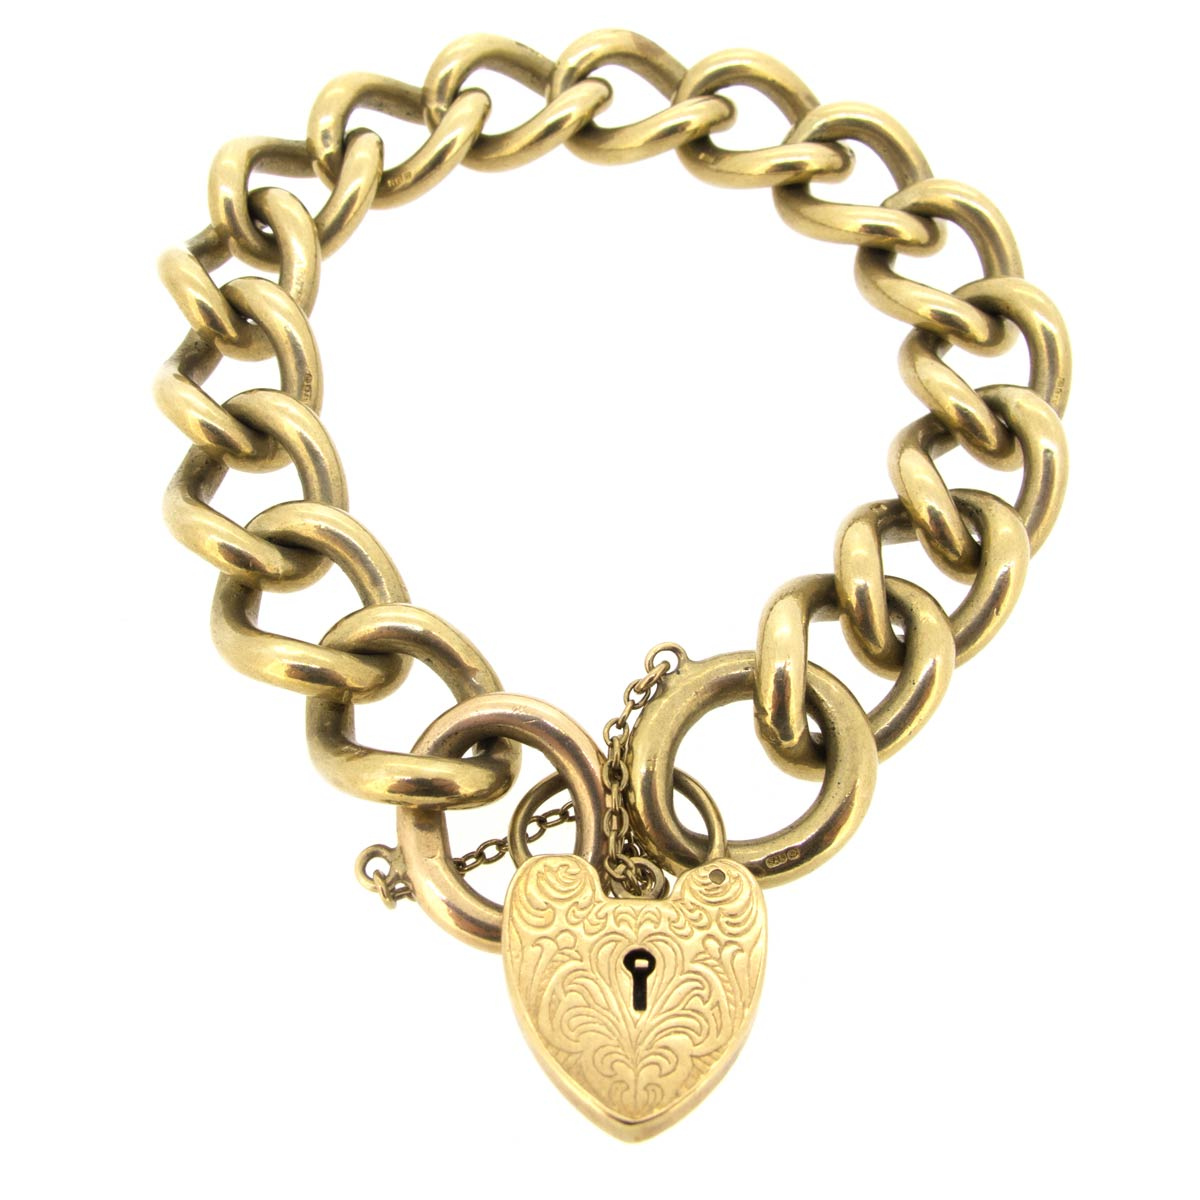 Gold Bracelet with Heart Padlock